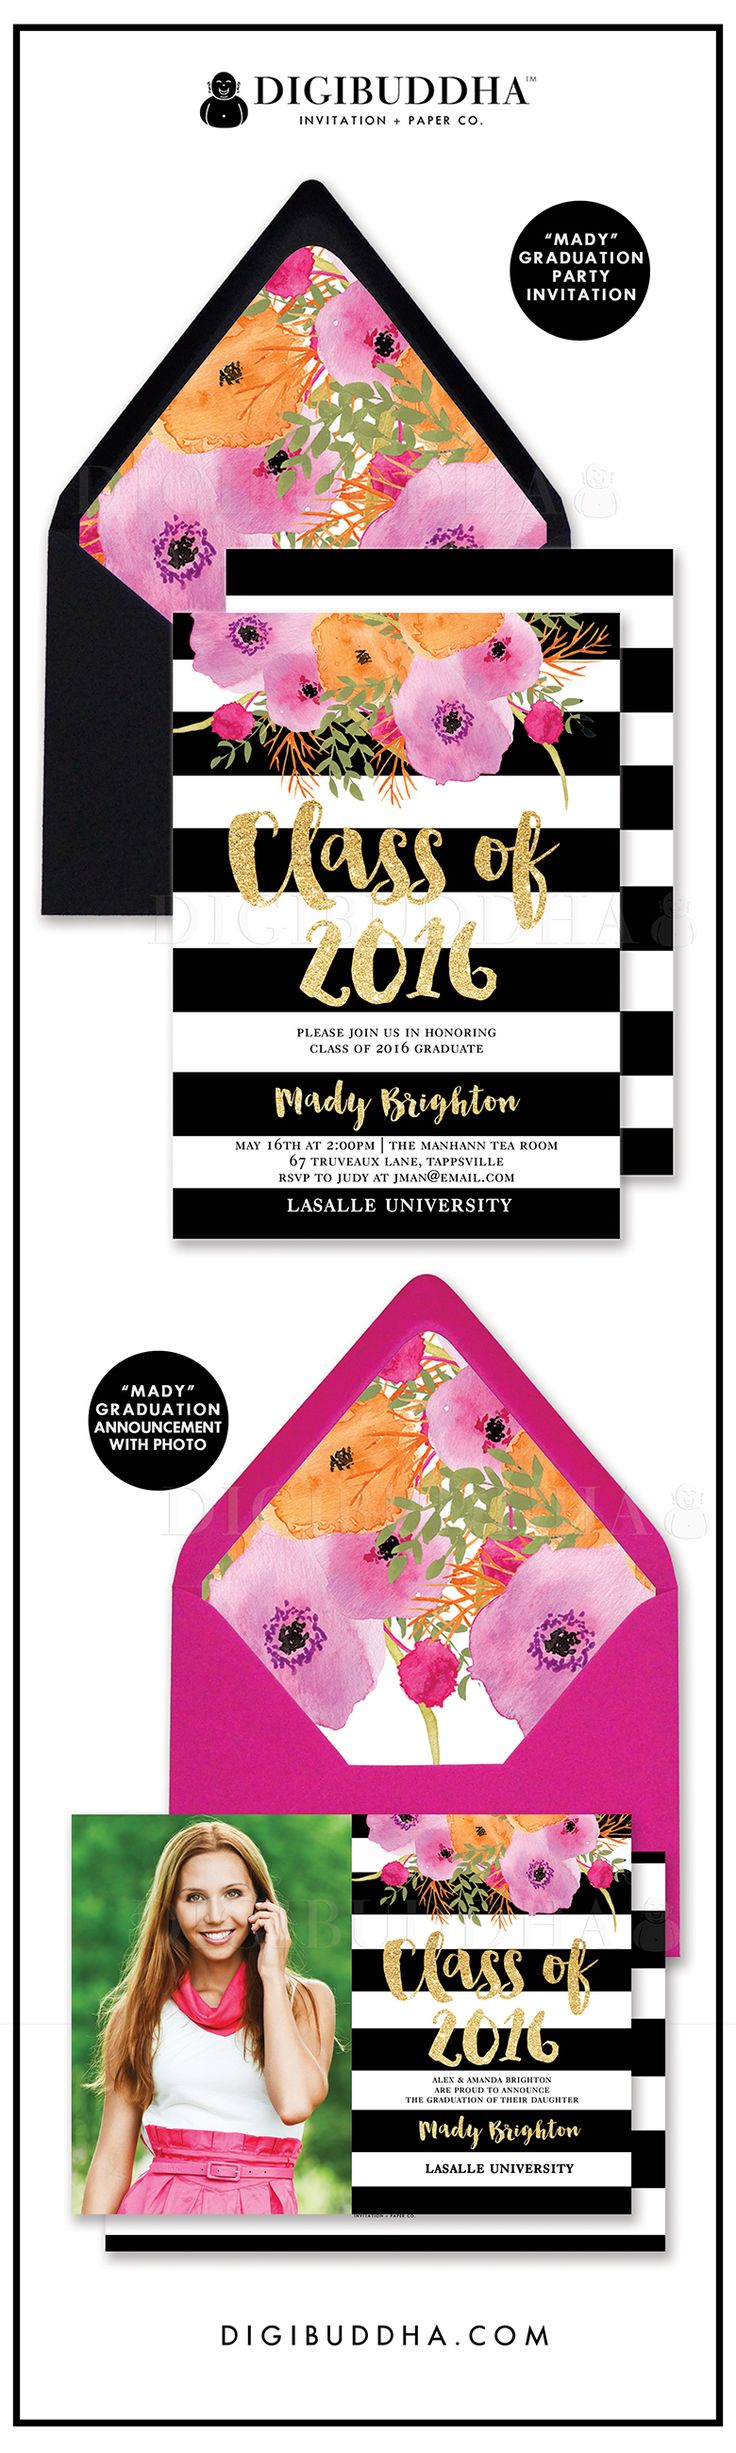 fabric purses Trend setting black and white stripe Graduation party invitations and graduation announcements with bright  bold watercolor flowers in modern fuchsia hot pink and orange  Modern elegant glam gold glitter brush lettering  optional floral watercolor envelope liners and tons of envelope color options   Available as a grad announcement with photo  or grad party invitation  Original design only available at digibuddha com